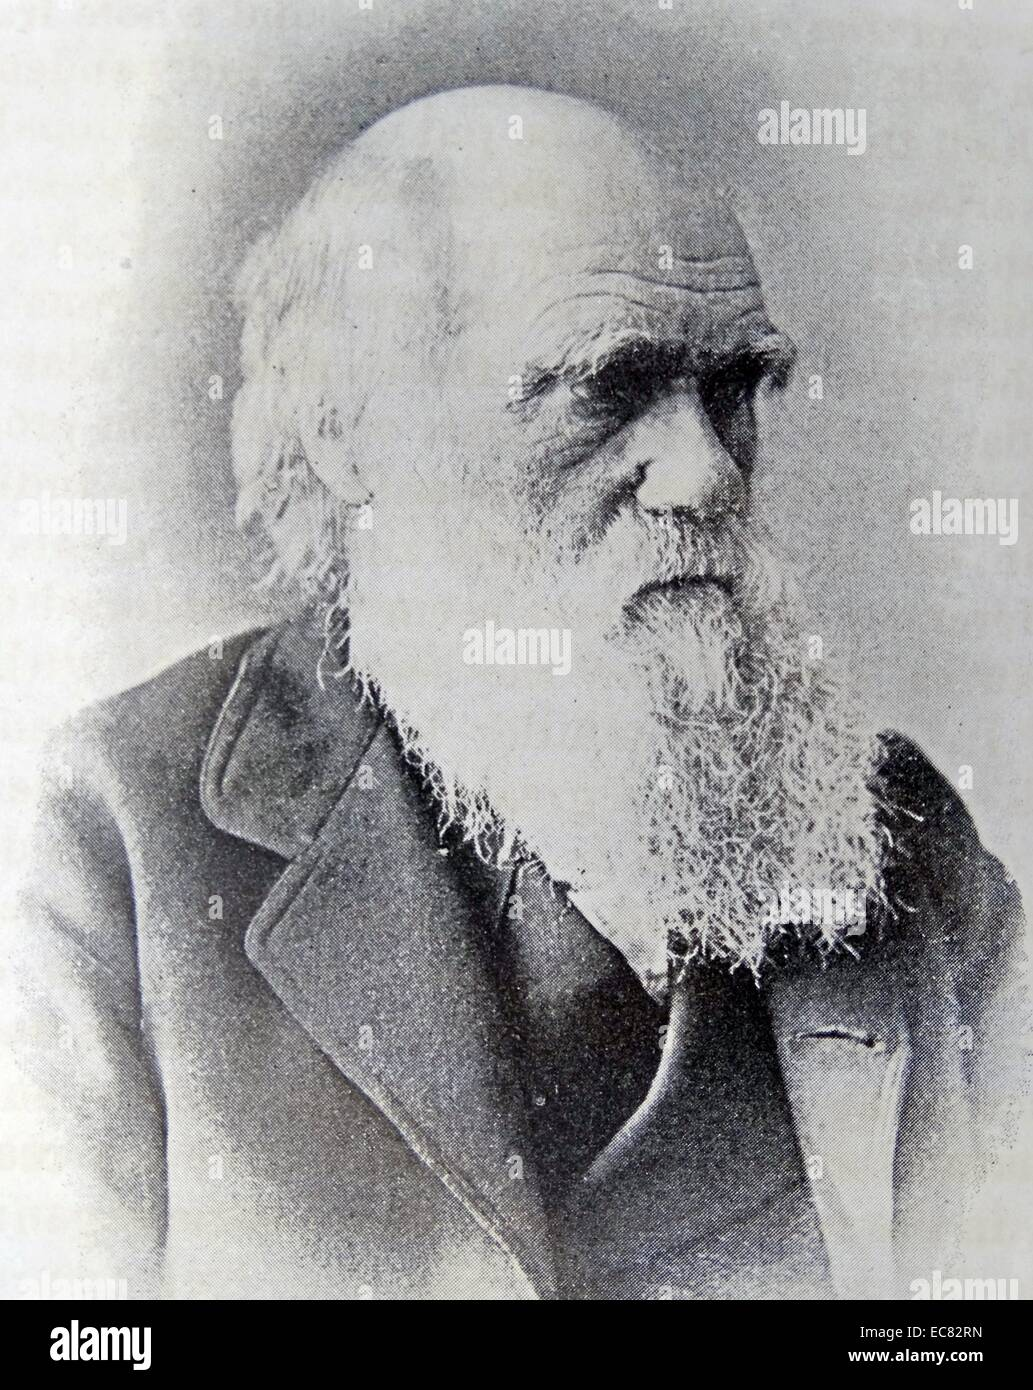 Photograph of Charles Darwin - Stock Image